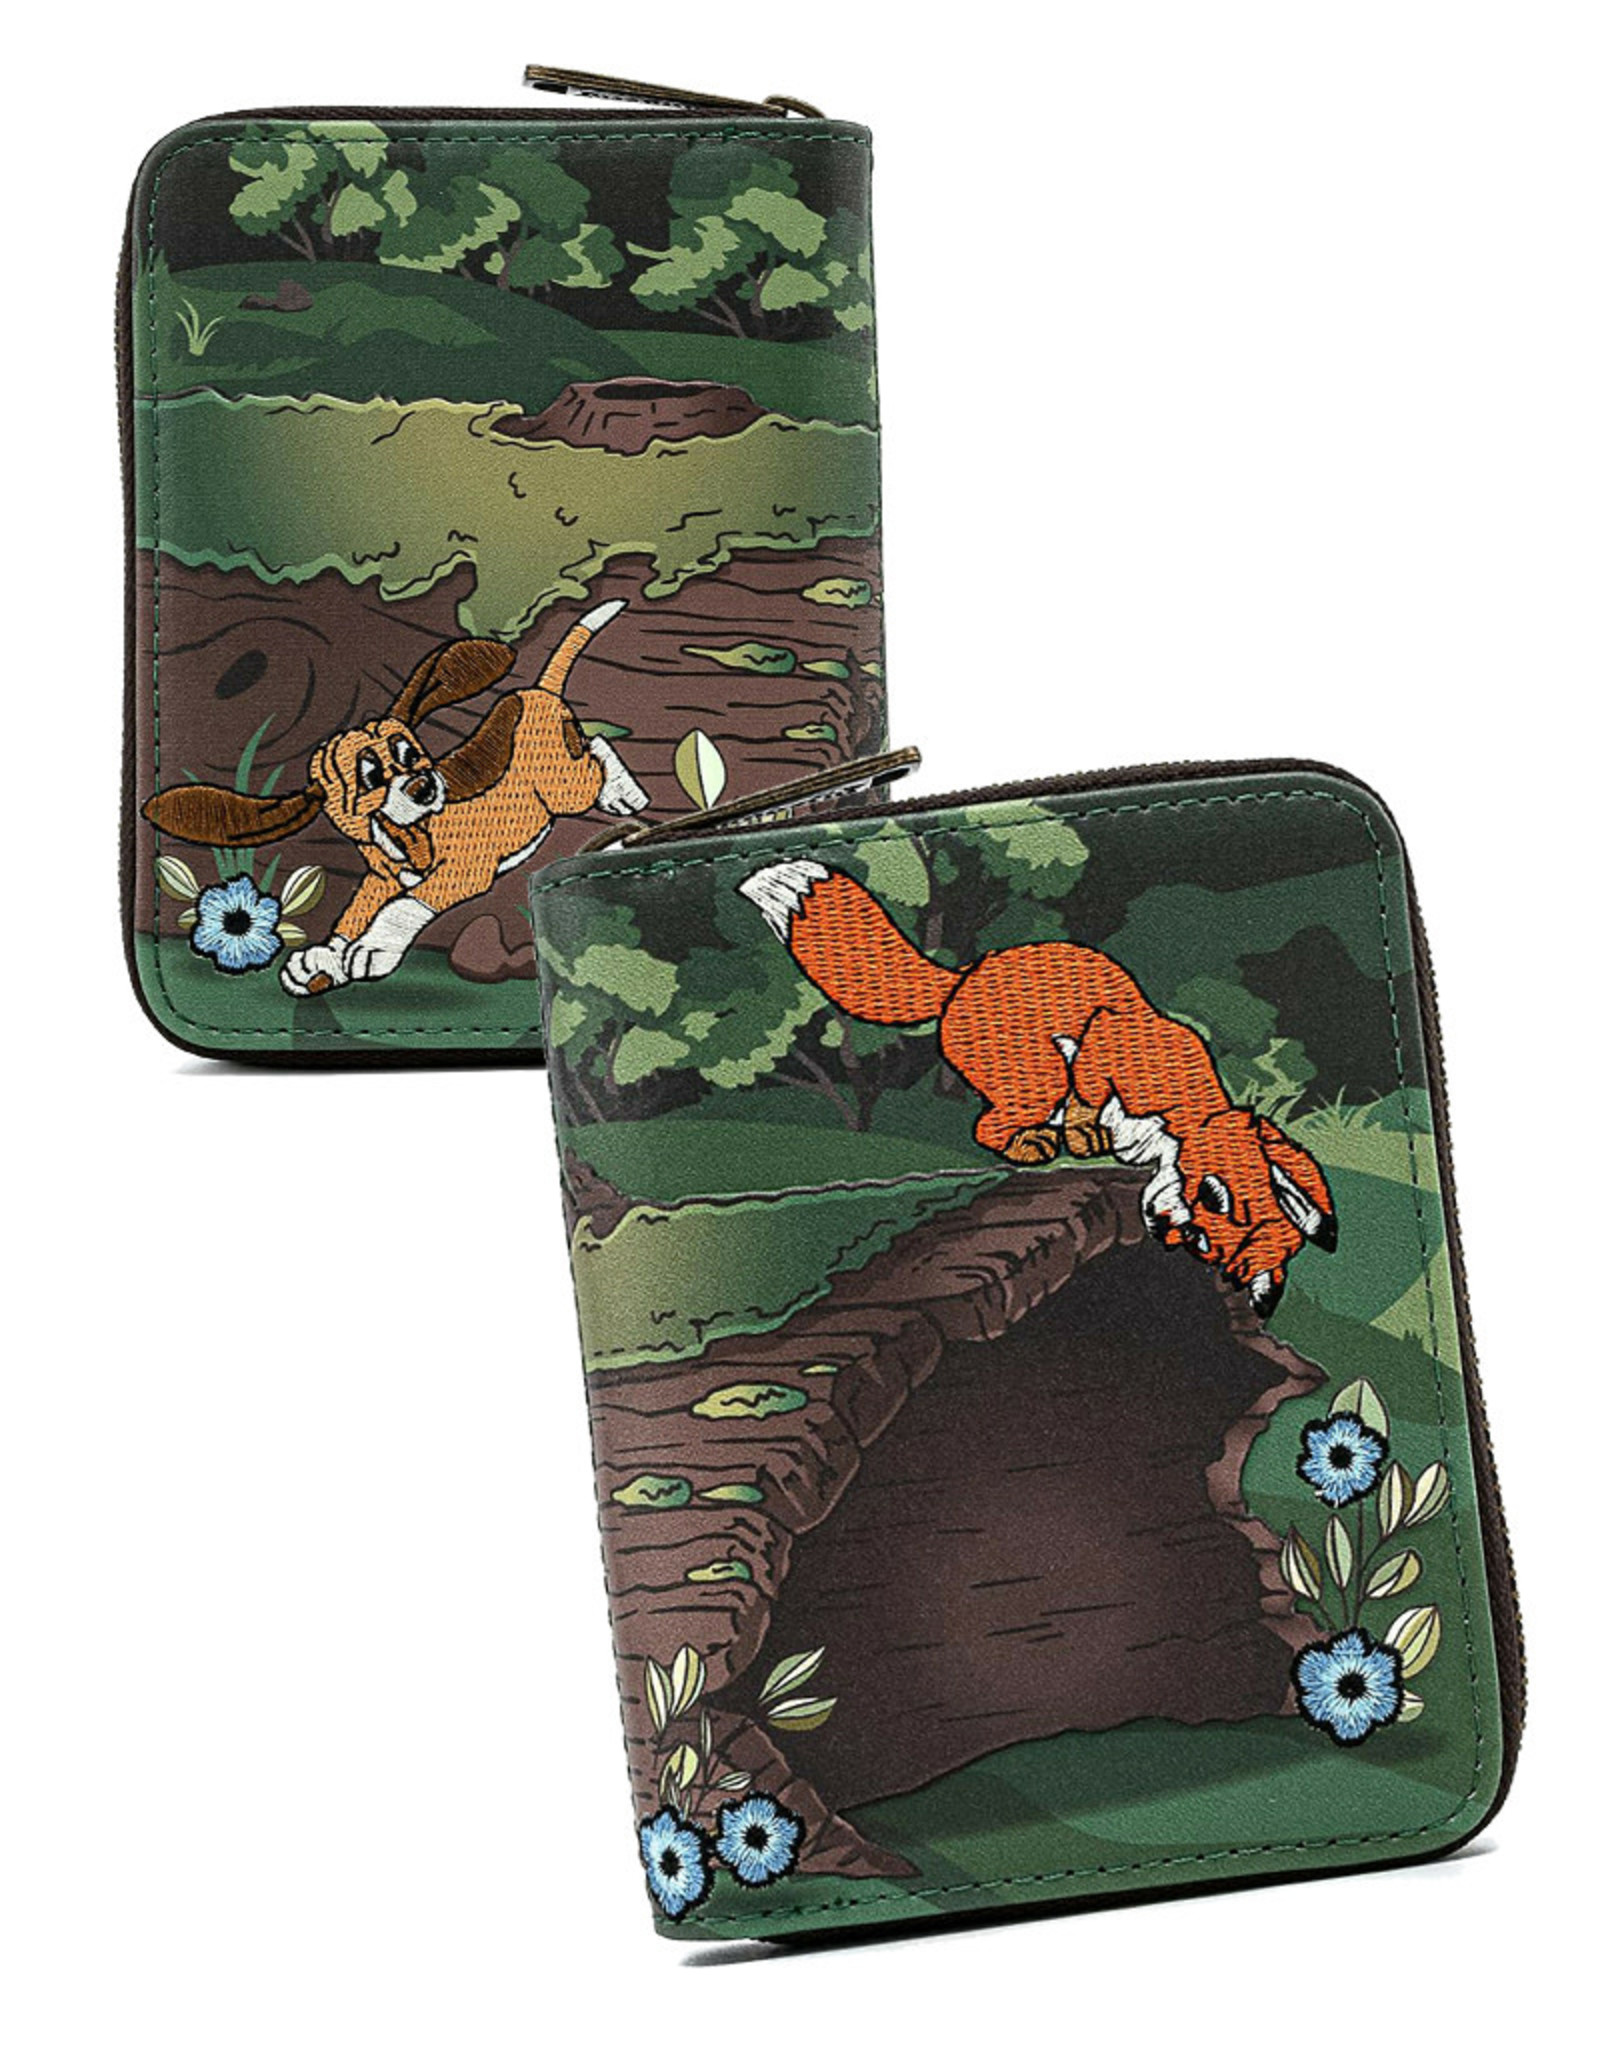 Disney ( Loungefly Wallet ) The Fox and the Hound